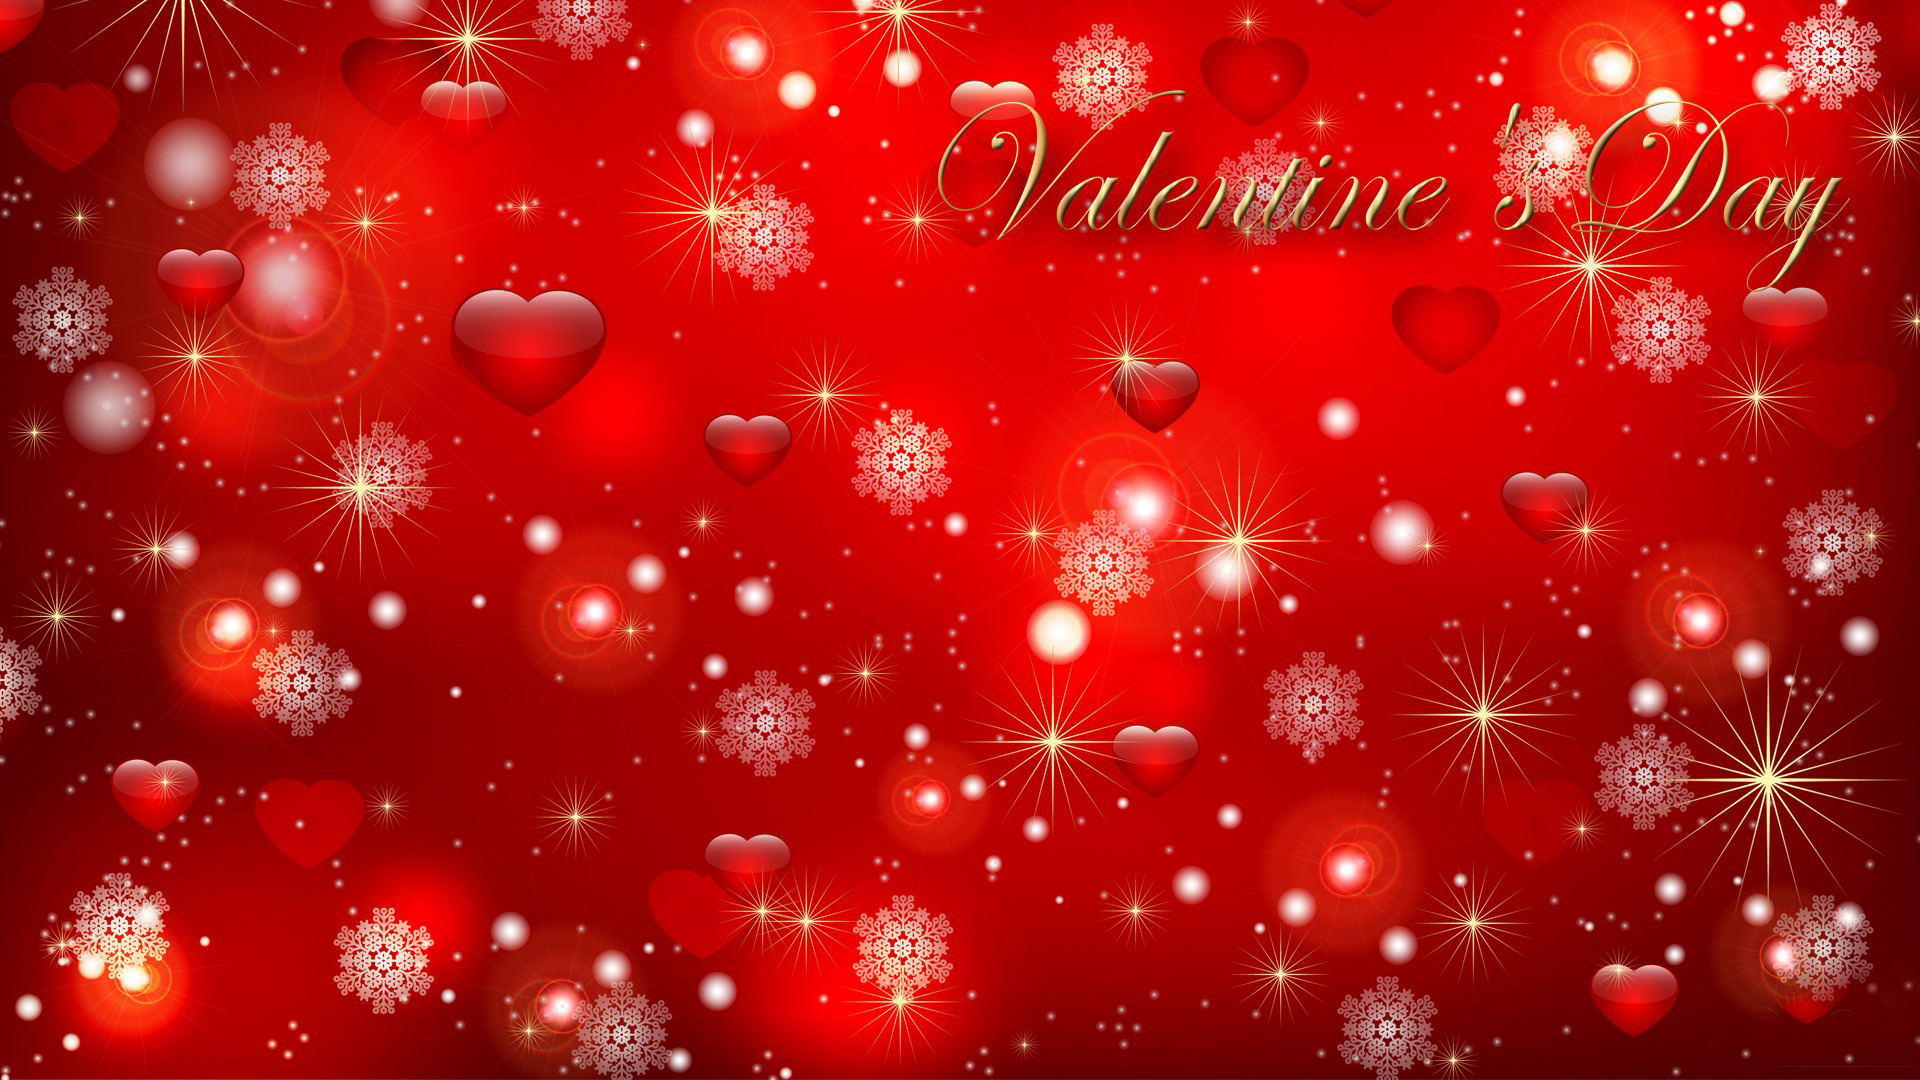 Valentines Backgrounds 1920x1080